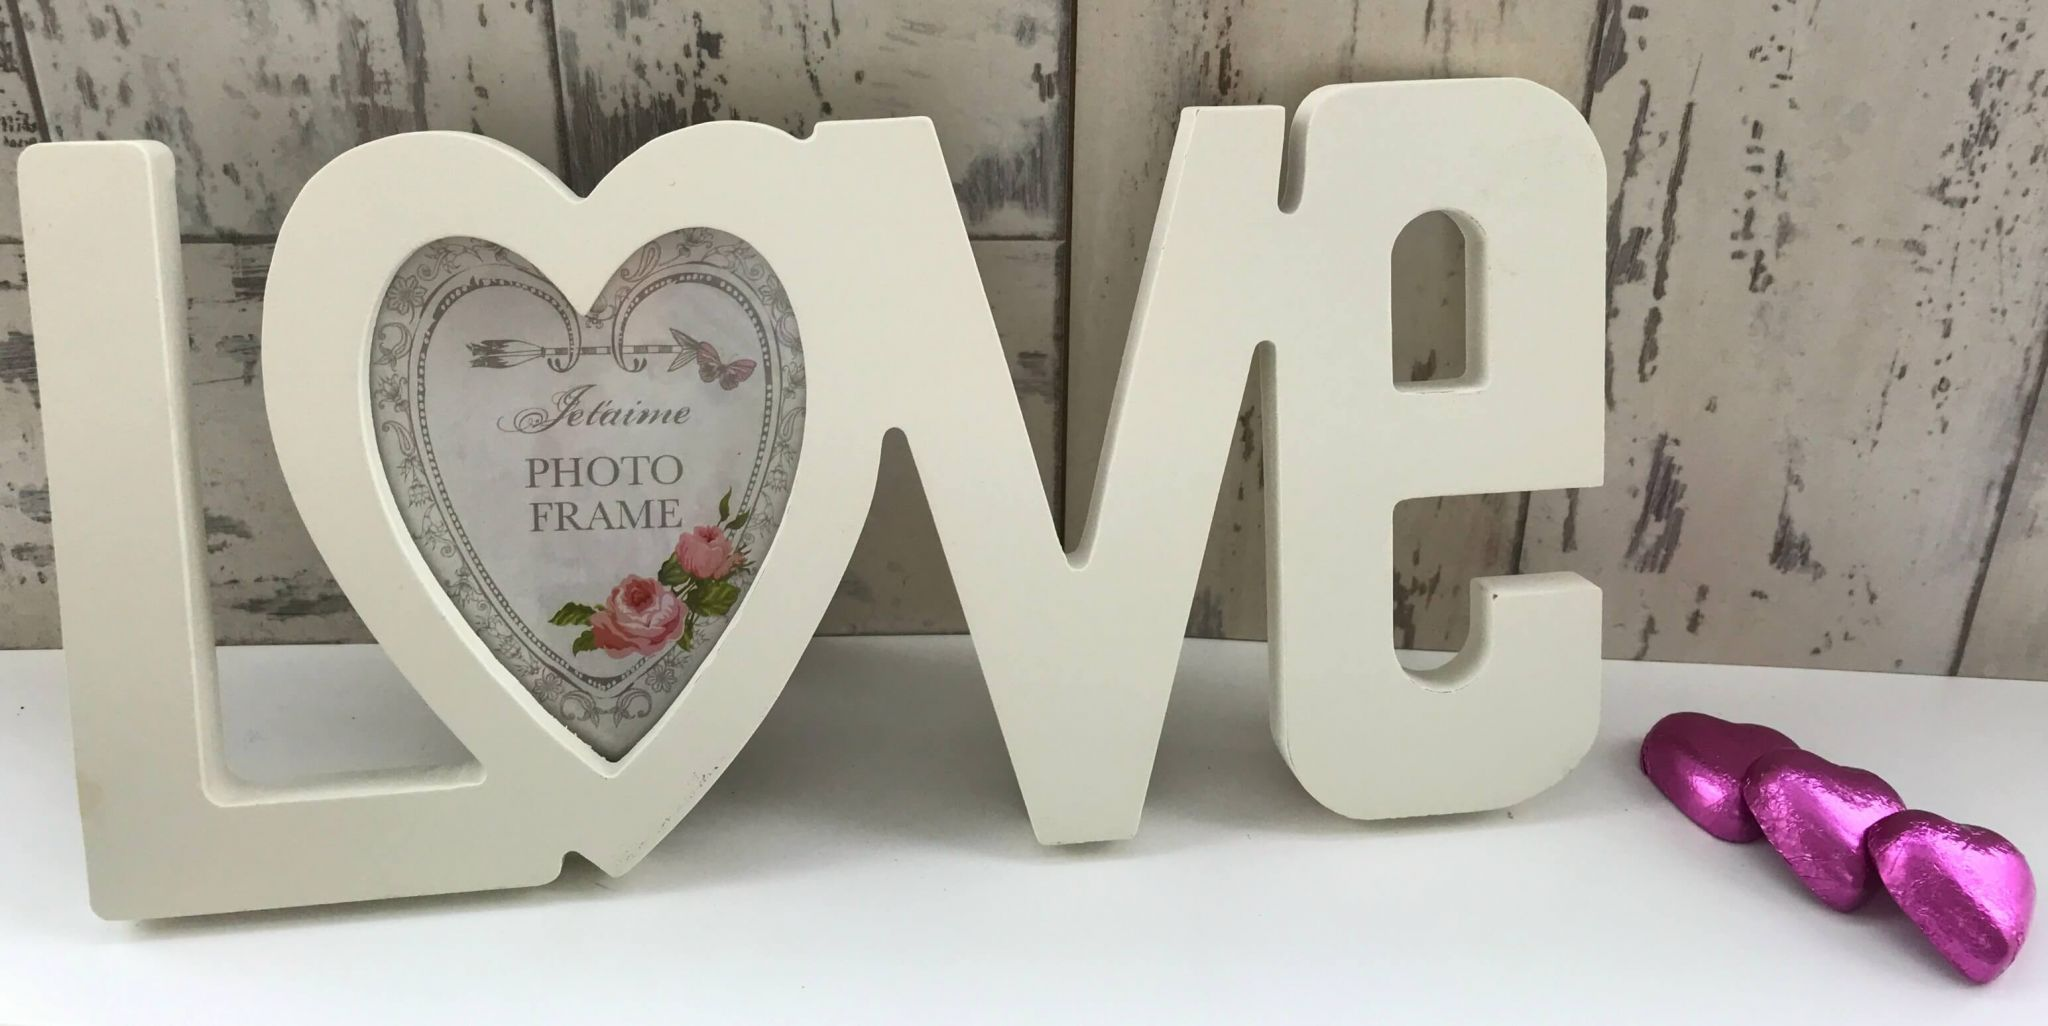 Mother's Day gifts on a budget - Home Bargains Love frame.